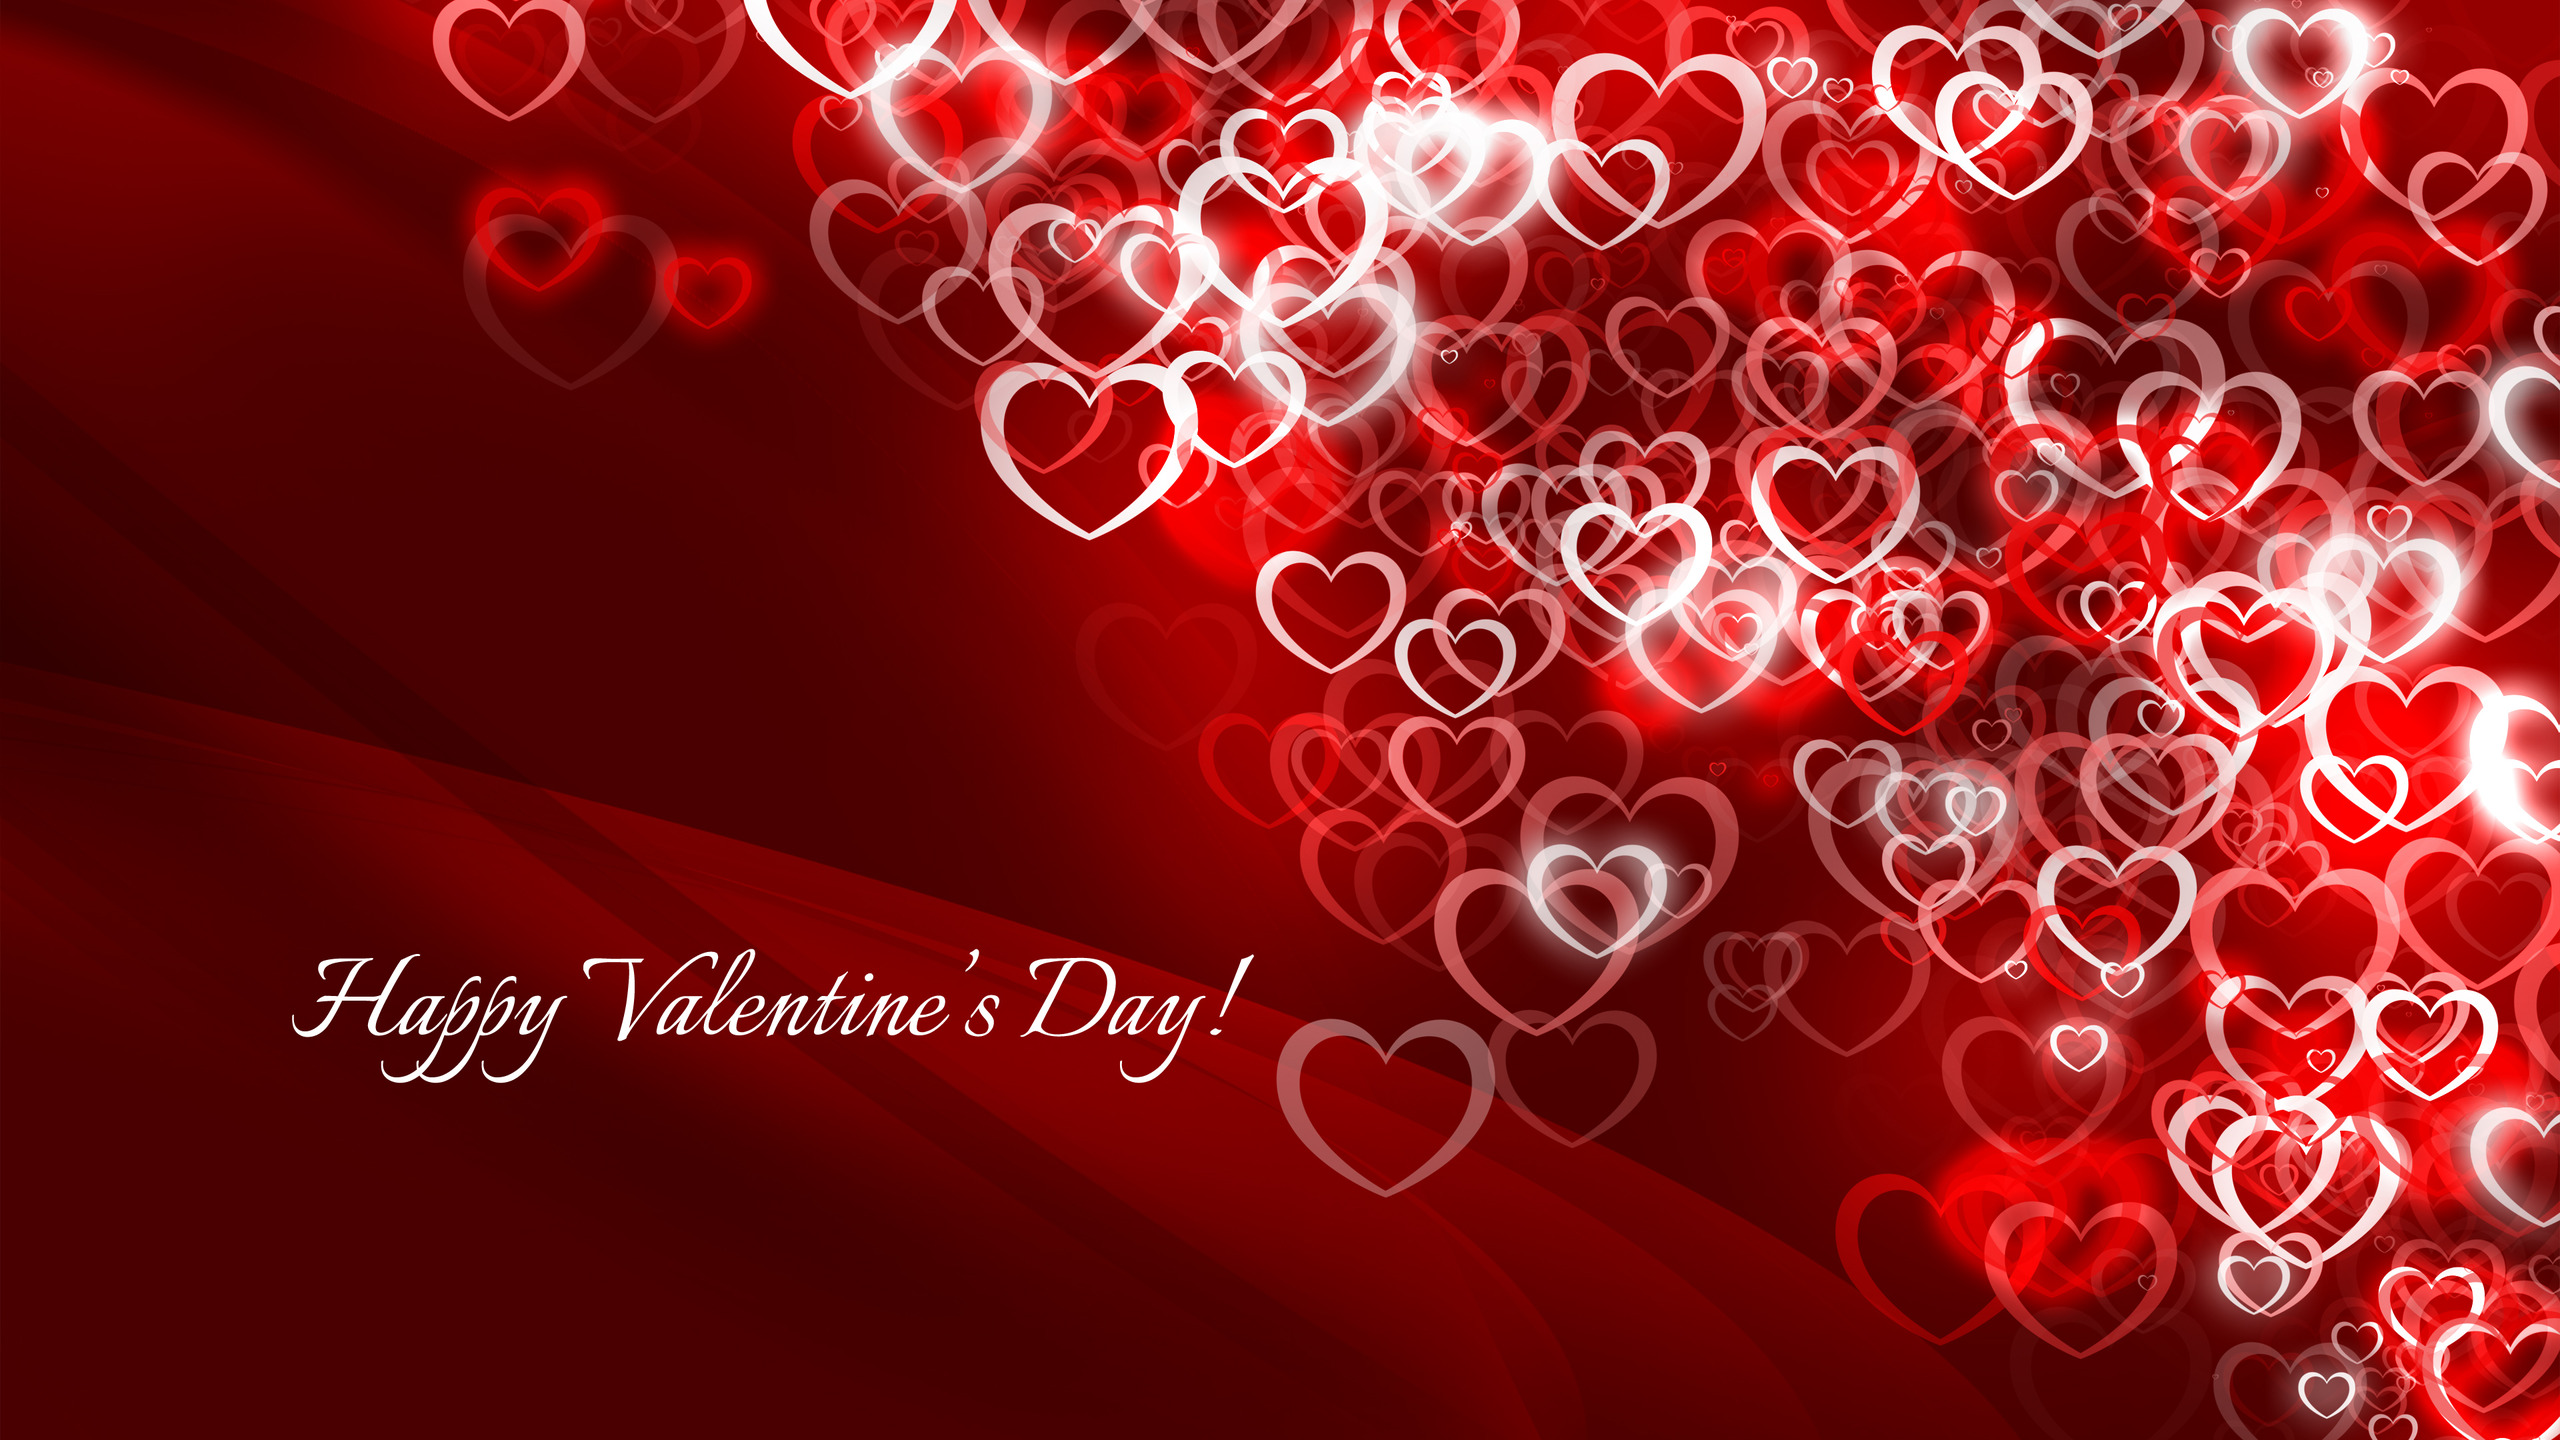 Happy Valentines Day Wallpaper Images 2560x1440